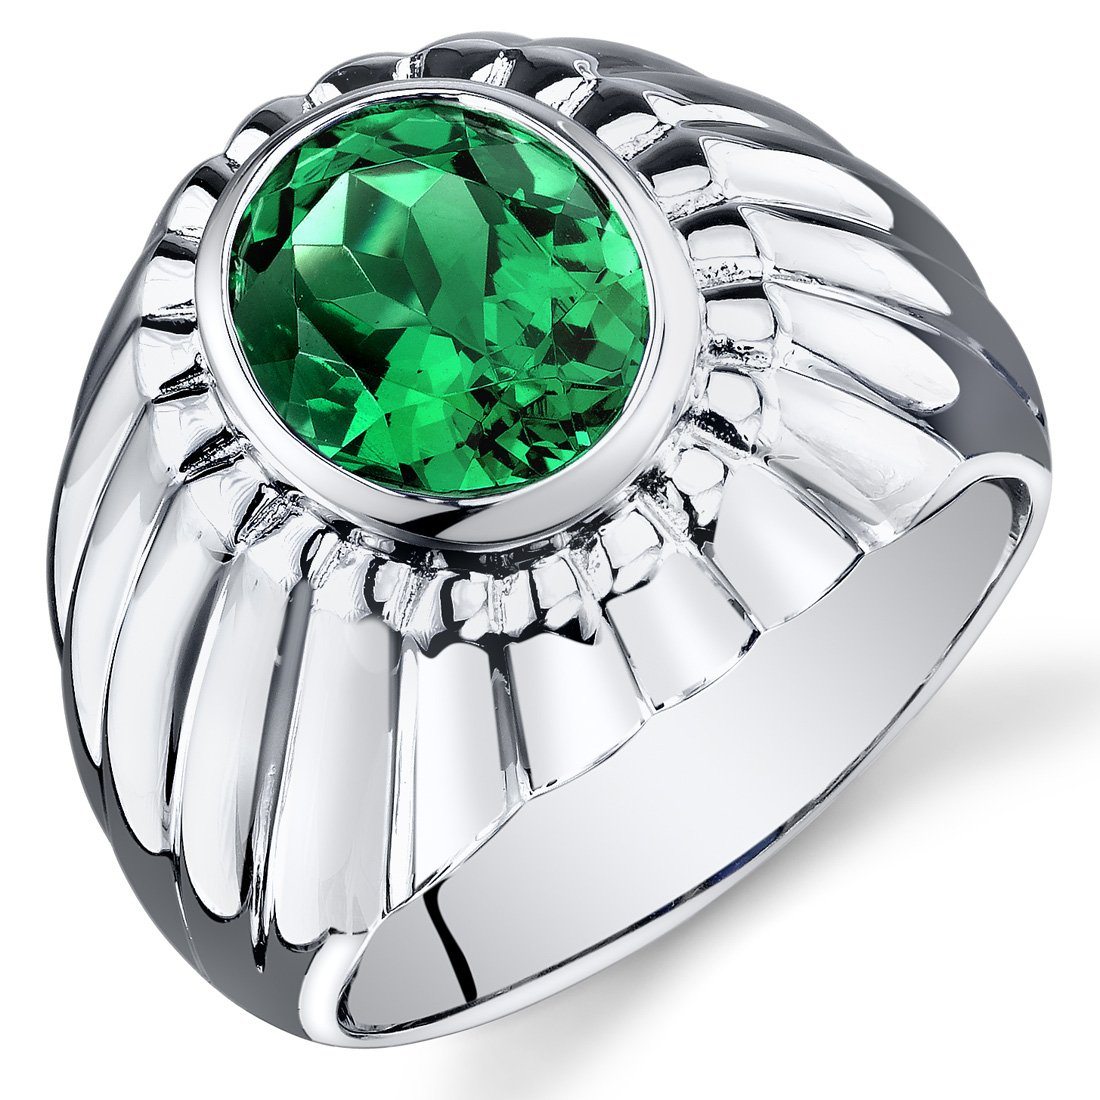 Mens Simulated Emerald Bezel Ring Sterling Silver 3.75 Carats Size 11